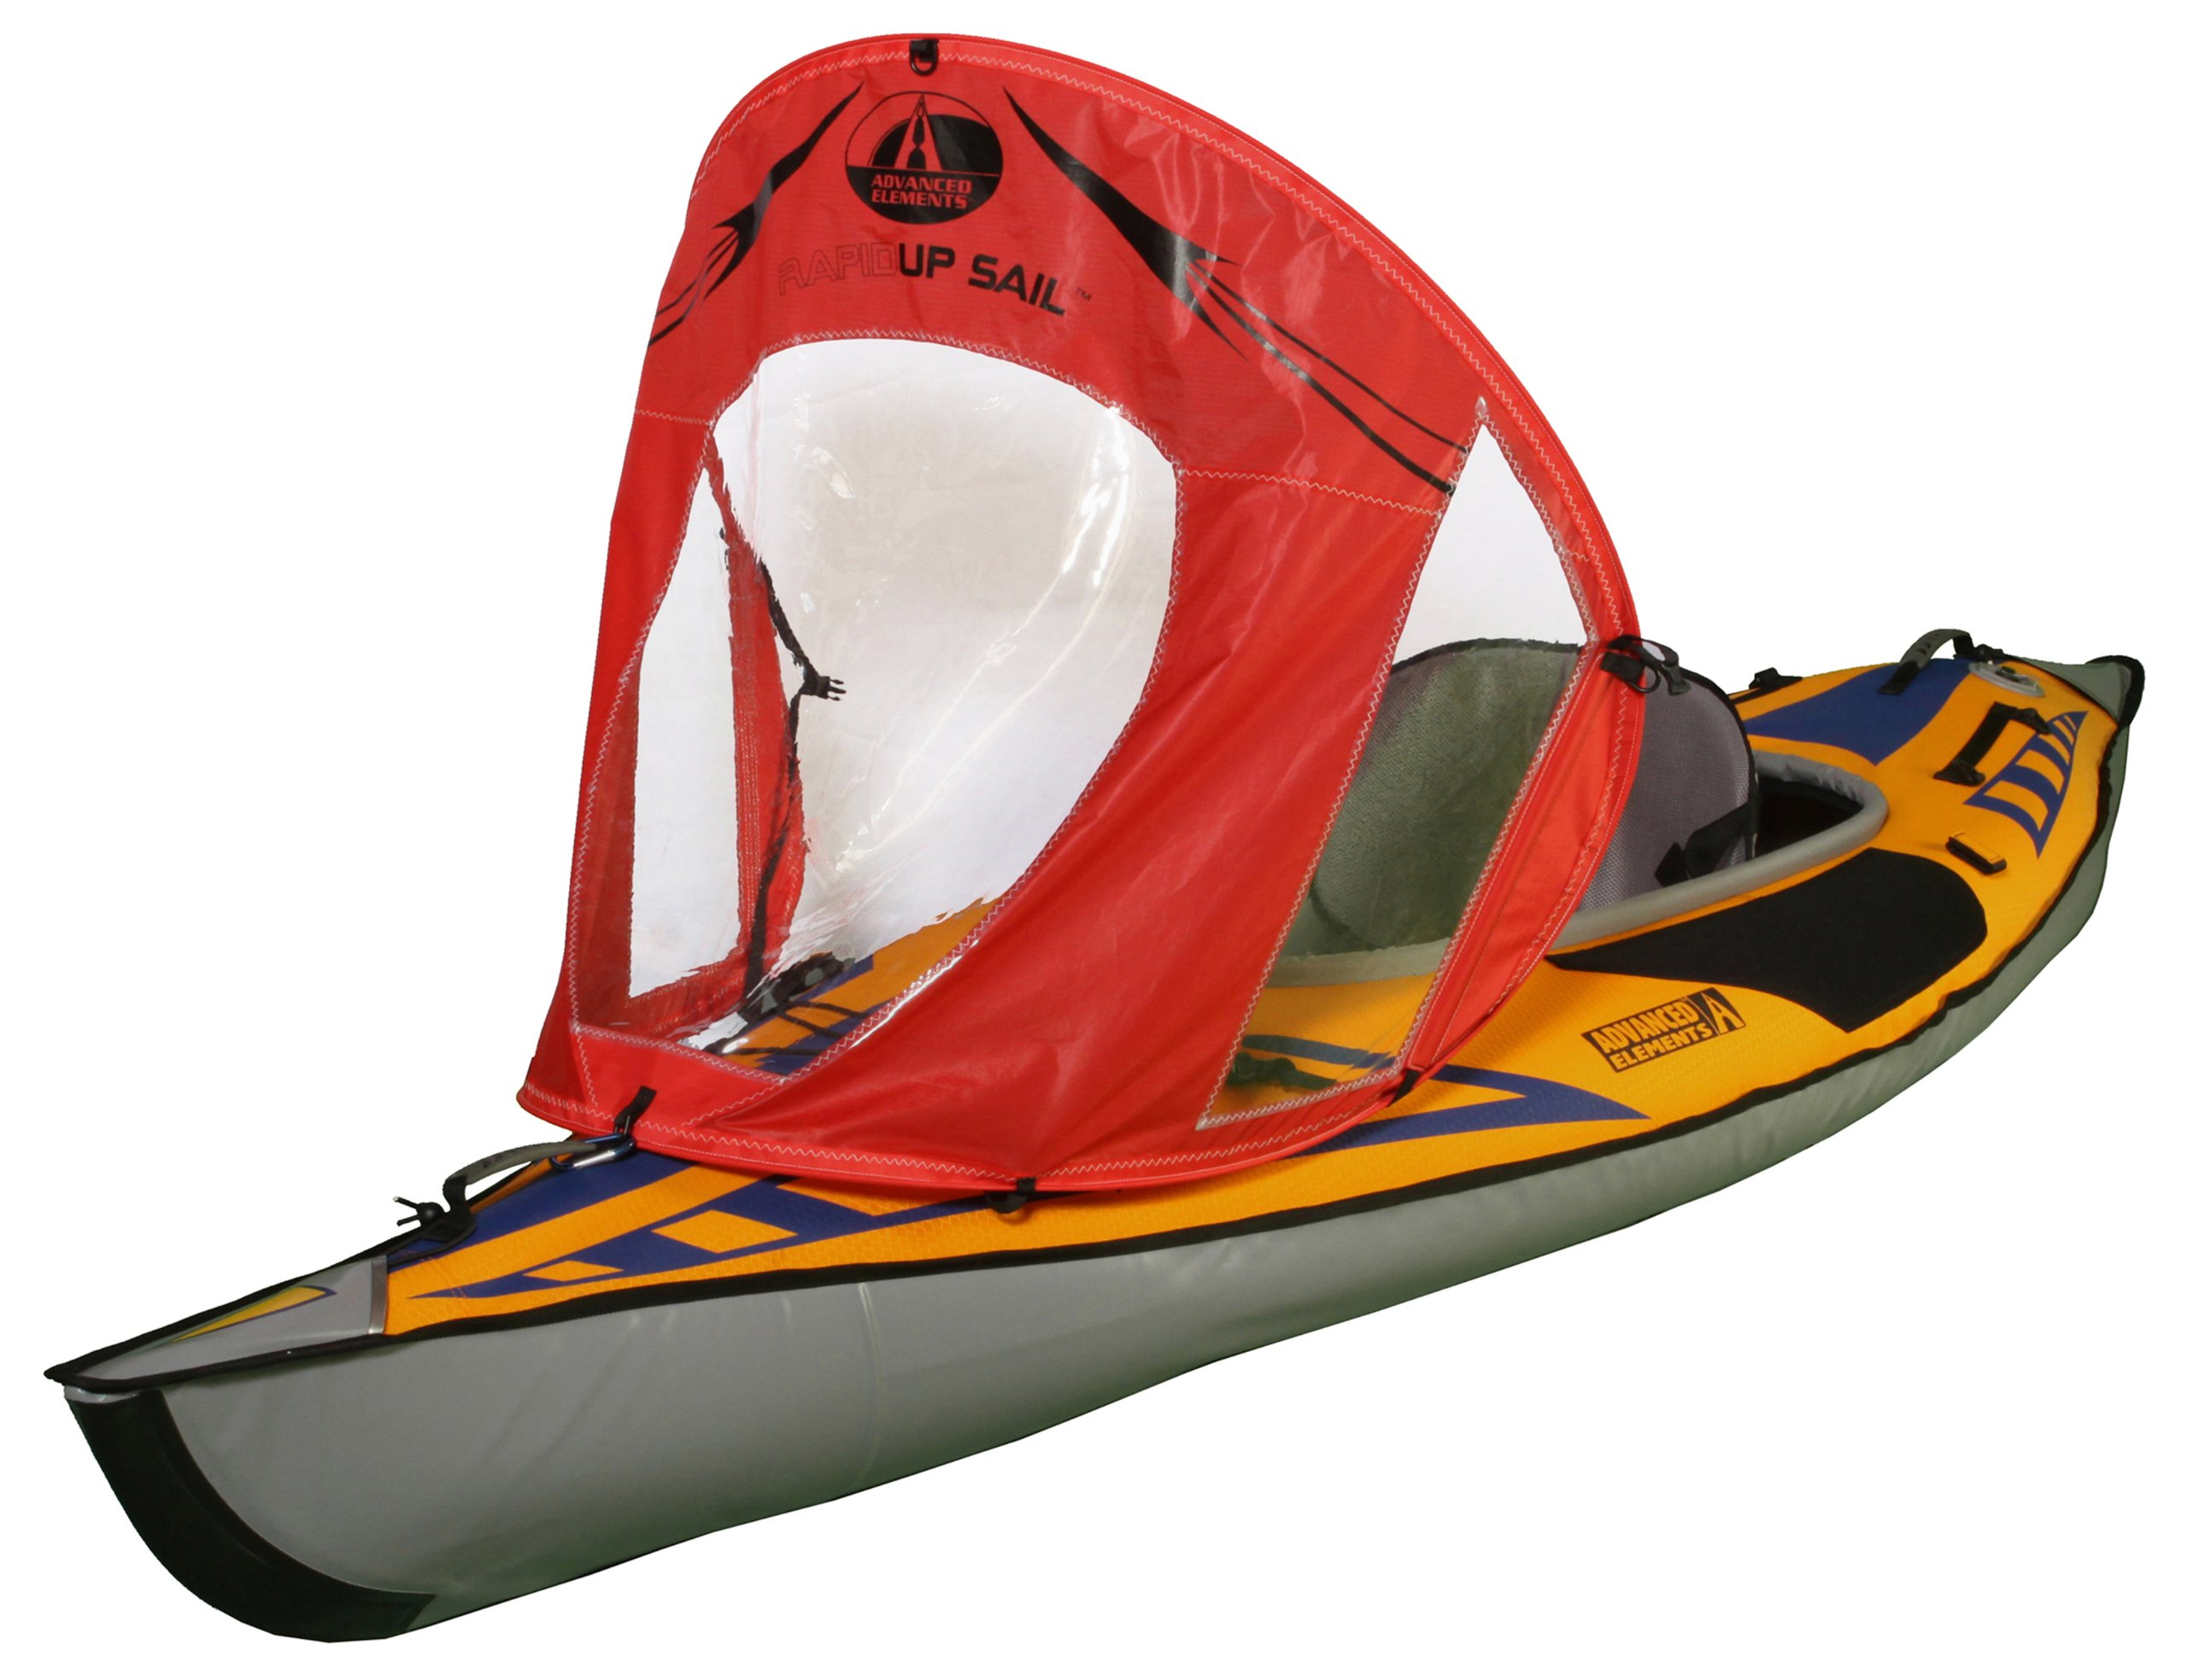 Blue-1 Olilio 42 inches Downwind Wind Sail Kit Kayak Wind Sail Kayak Paddle Board Accessories,Easy Setup /& Deploys Quickly,Compact /& Portable